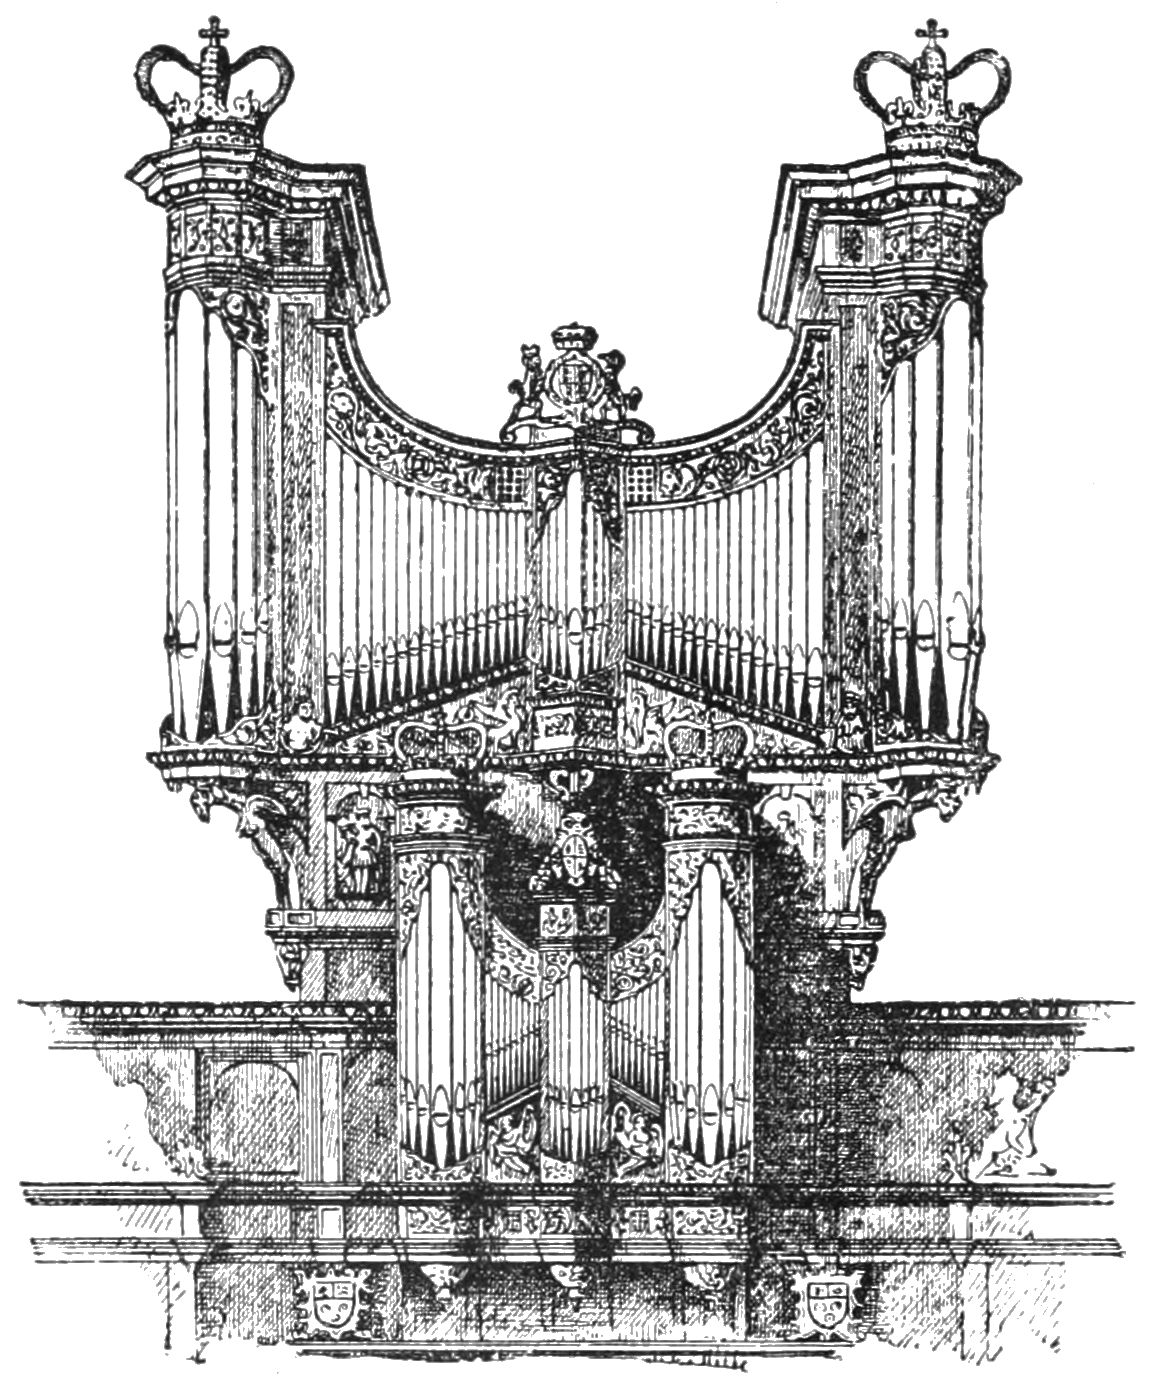 PSM V40 D648 Organ at kings college cambridge by dallam 1605.jpg